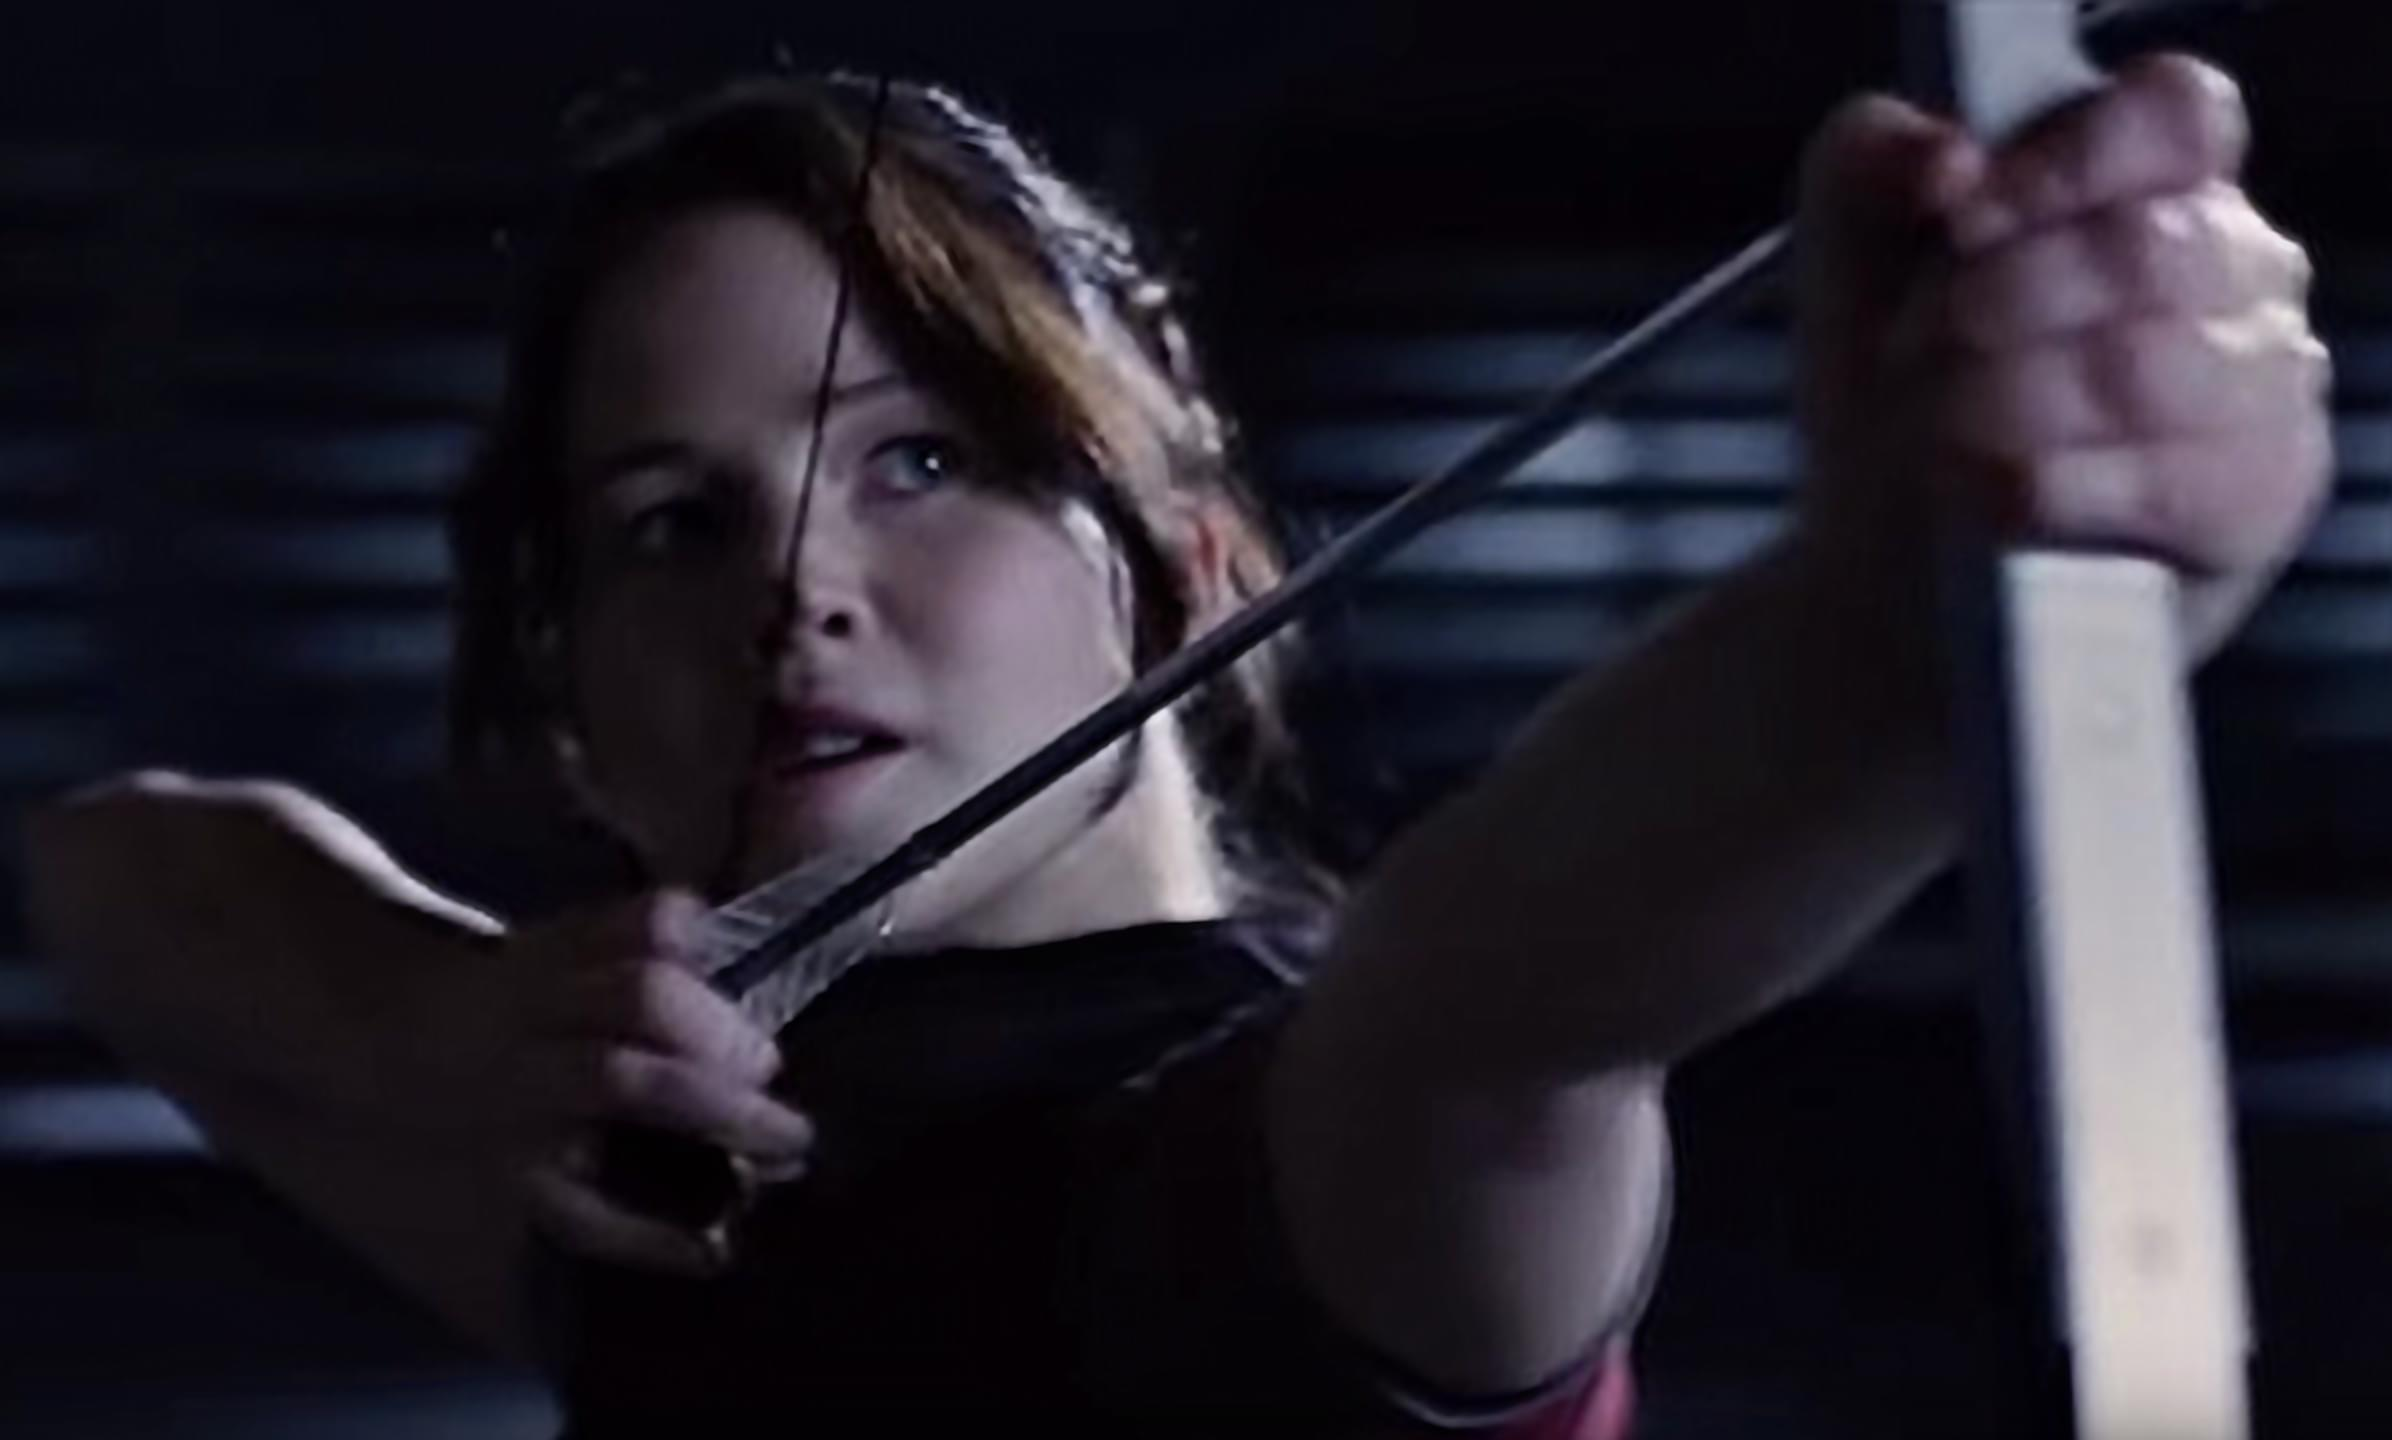 Hunger Games prequel film in the works?